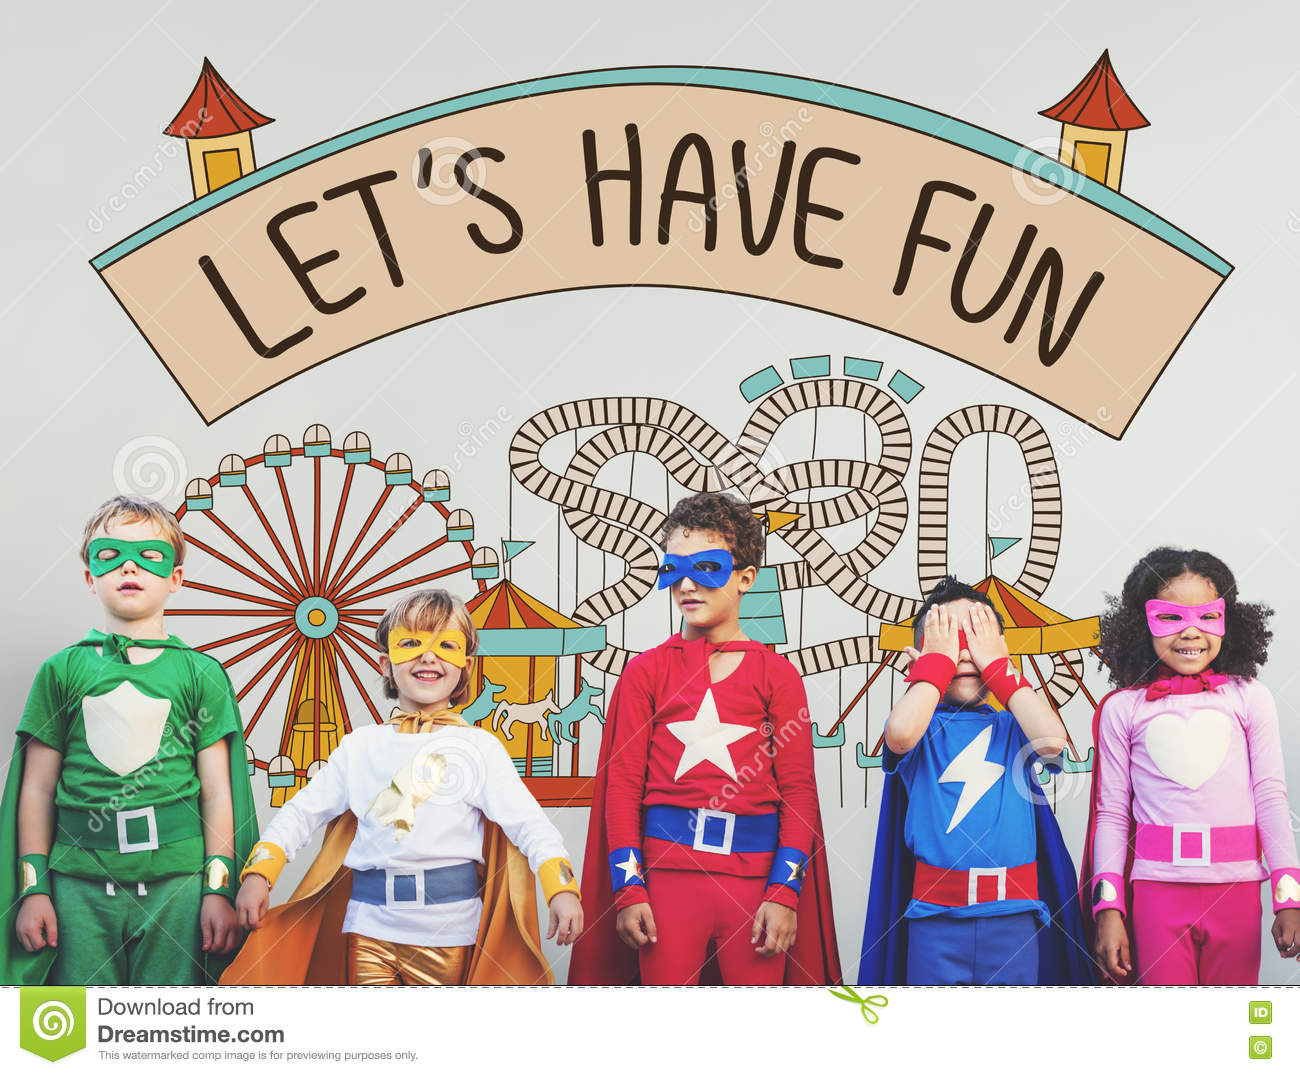 75a07ff1e Let's Have Fun Children Kids Graphic Concept Stock Image - Image of ...